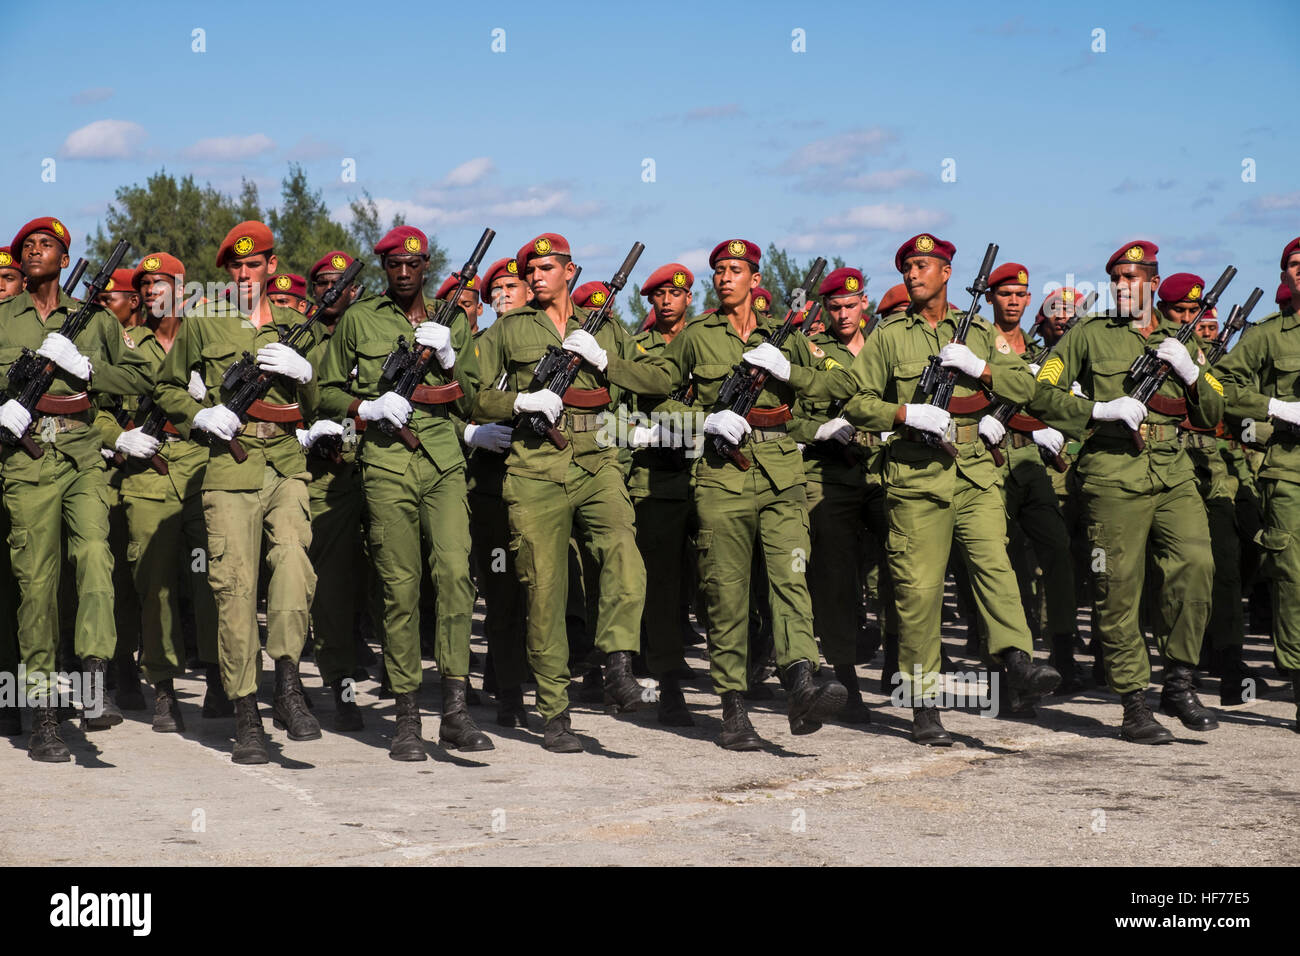 Military personel on training marches for the annual parade in honour of the Revolution, La Havana, Cuba. Stock Photo